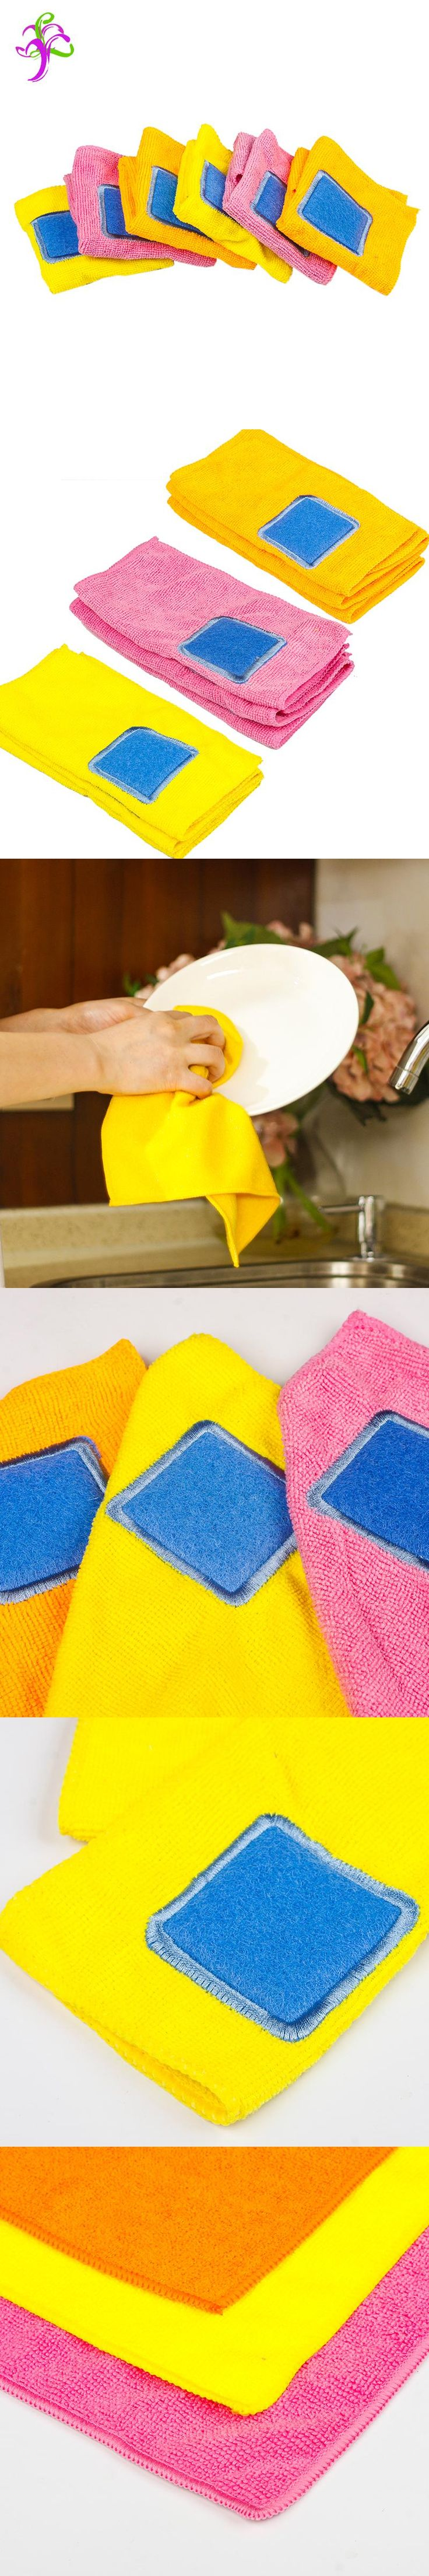 3PC/lot 20*30CM Absorbent Microfiber Towels Micro Fiber Cleaning Cloths Professional kitchen/Home/Hotel Washing Towel CL001